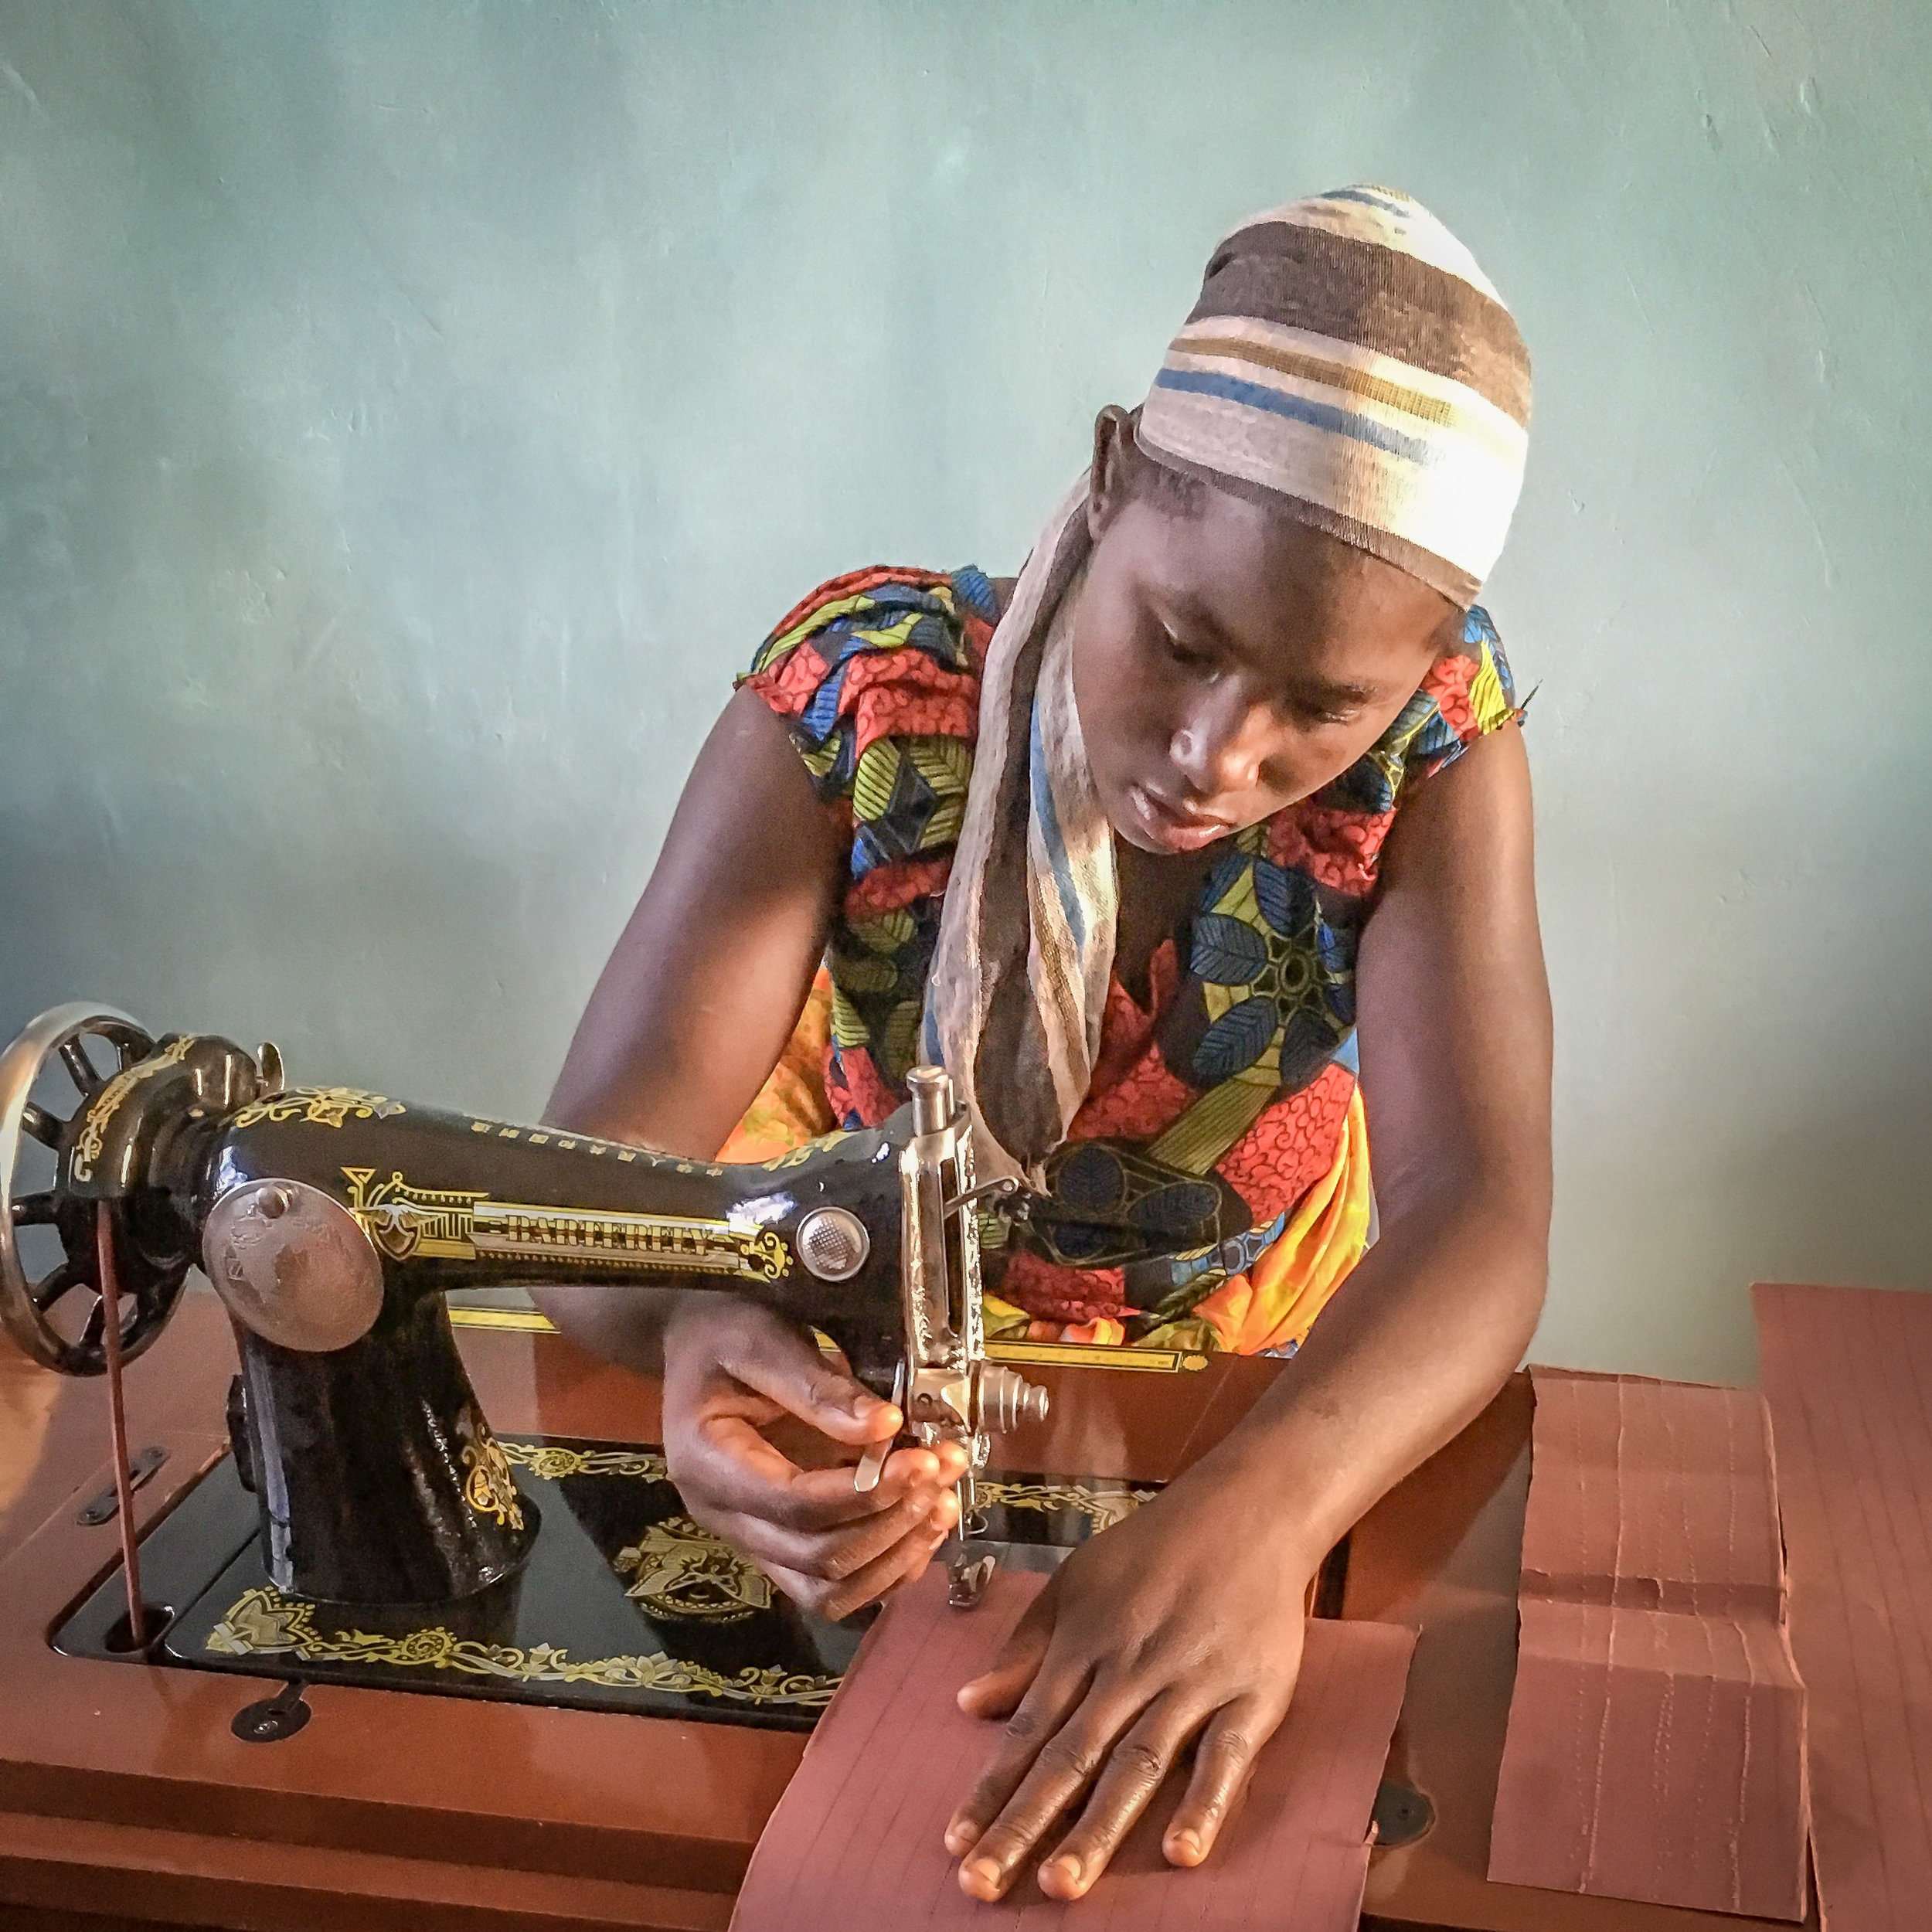 One of the young women perfecting her new sewing skills.